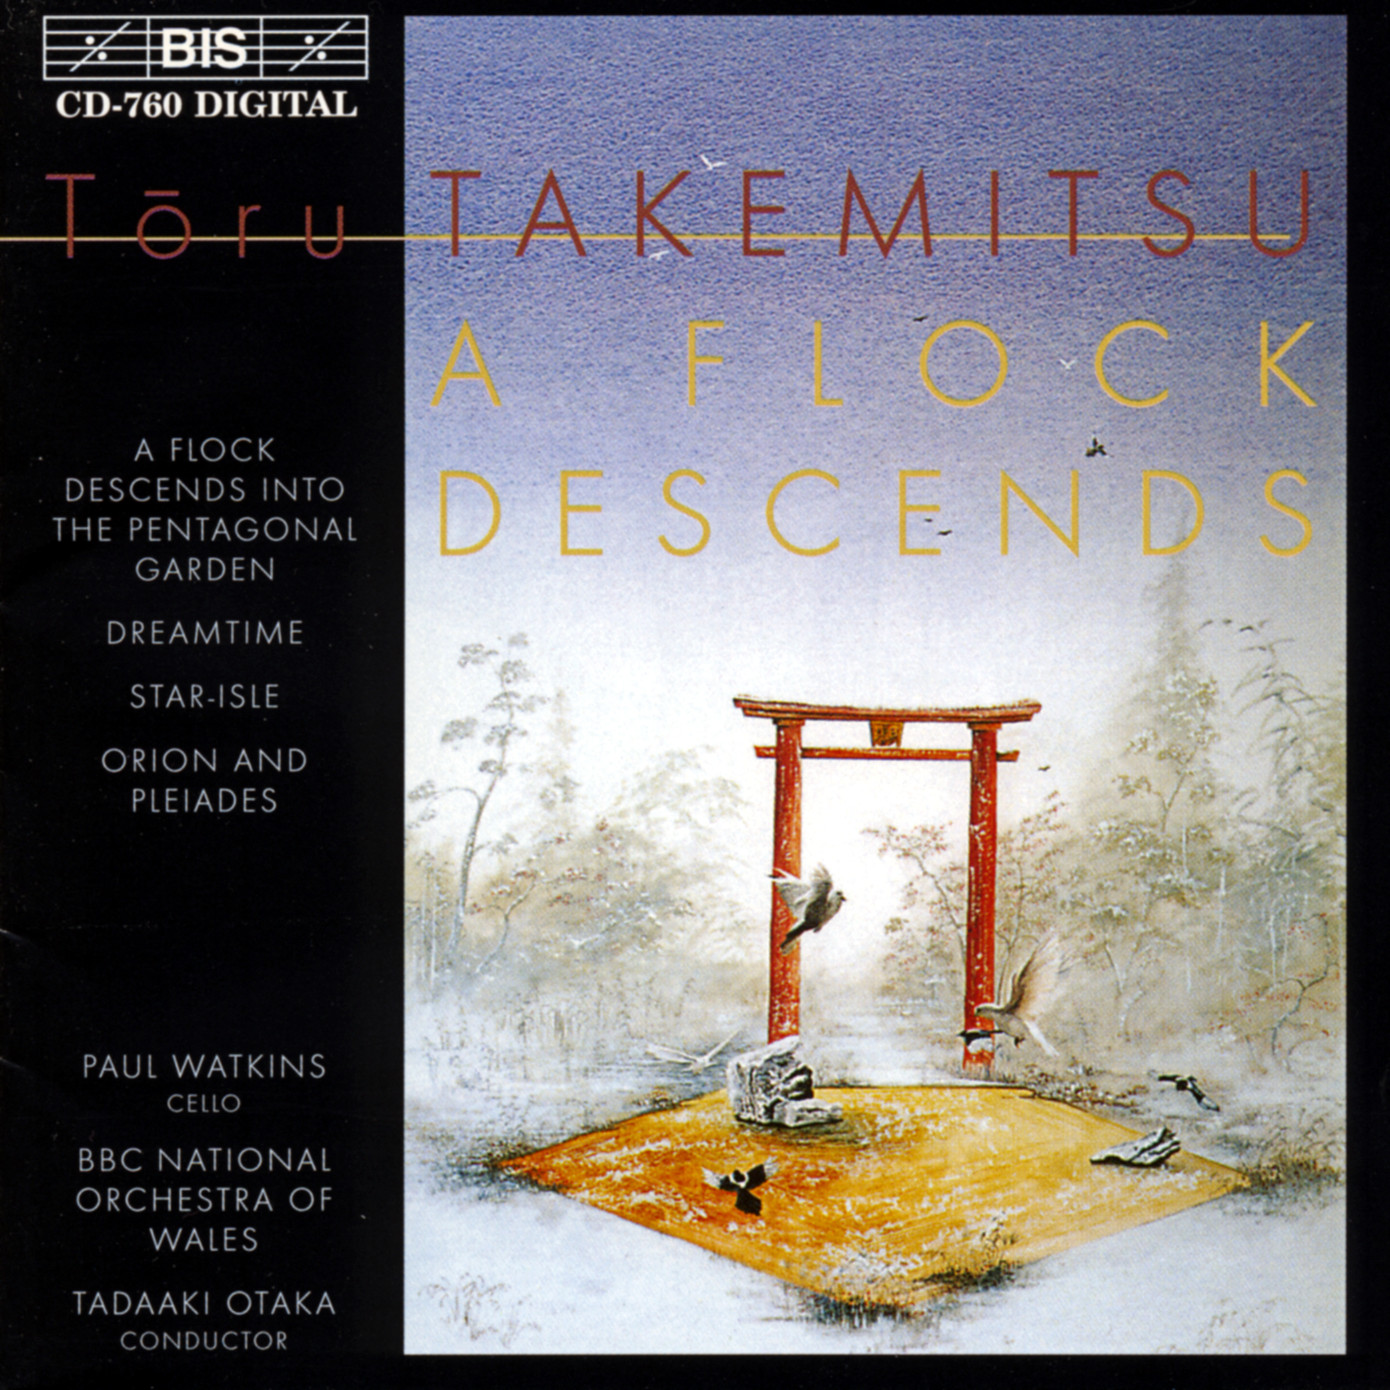 Takemitsu - Paul Watkins, BBC National Orchestra Of Wales, Tadaaki Otaka A Flock Descends